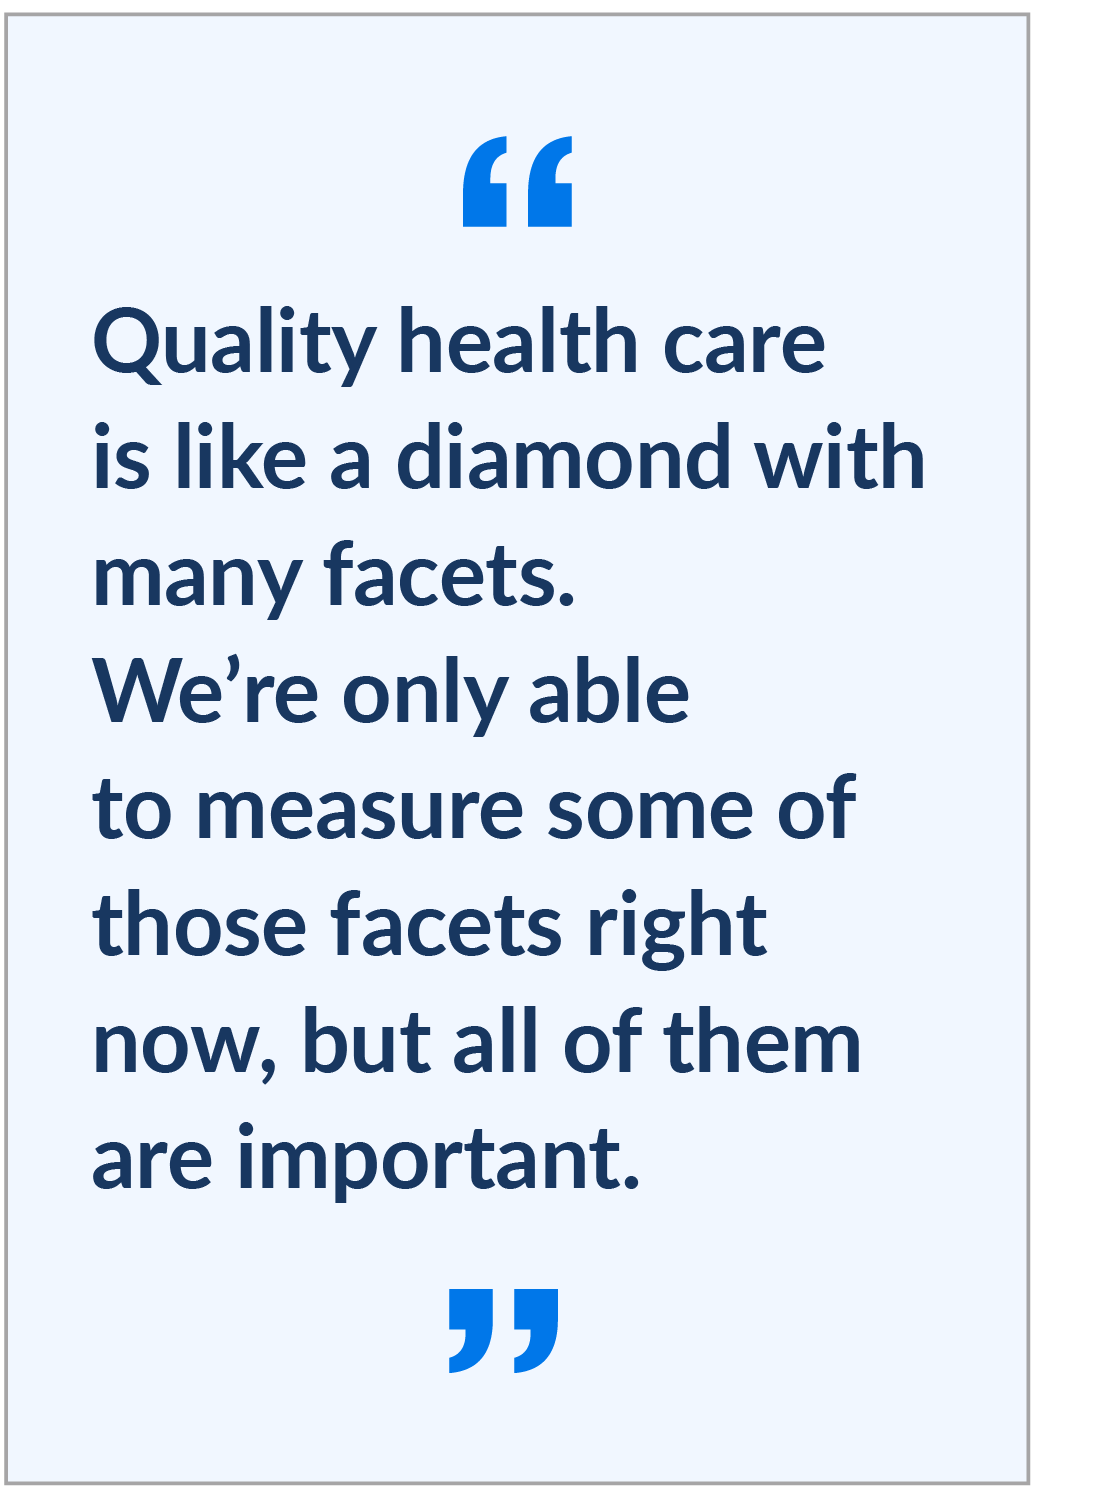 Quality health care is like a diamond with many facets.